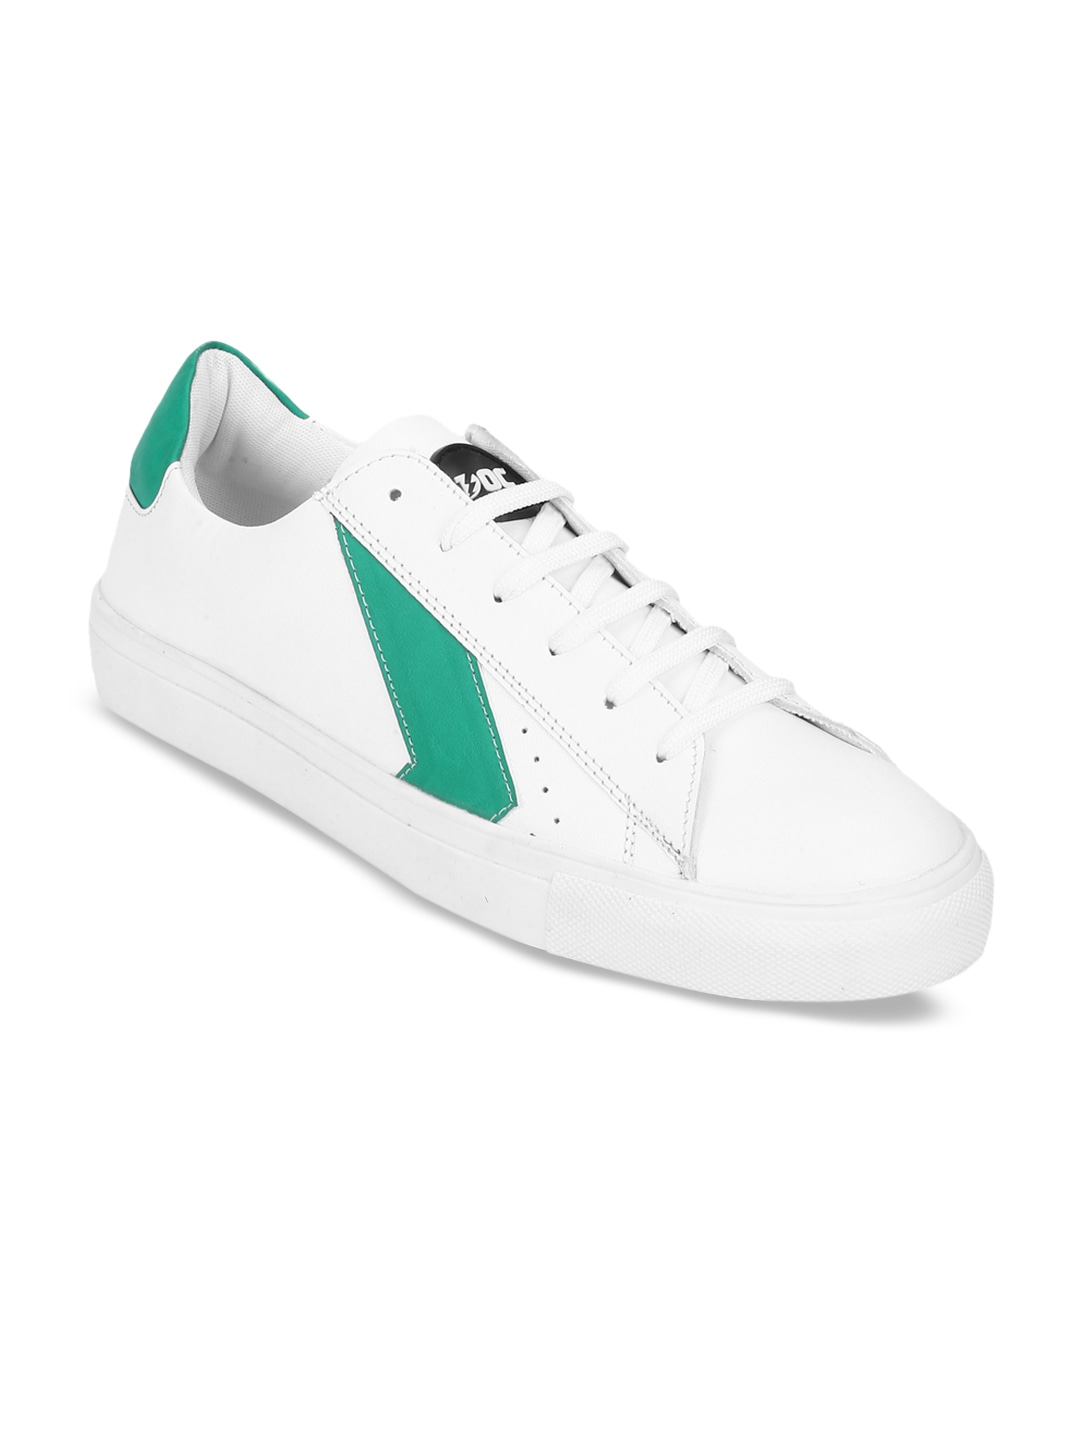 White & Green Melvin Colourblocked Sneakers